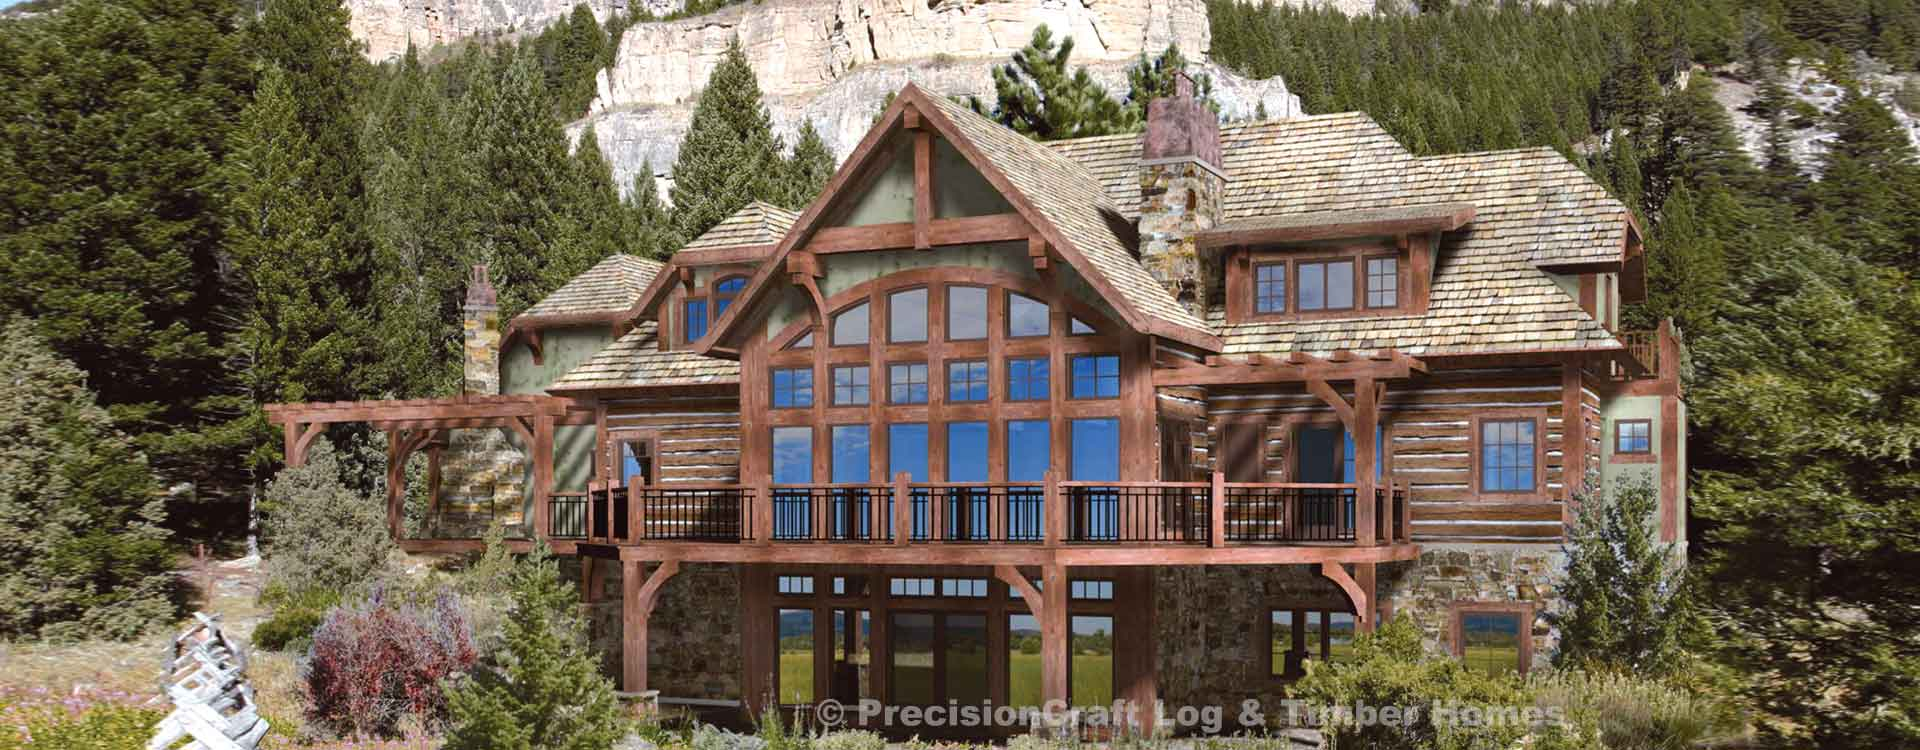 laurette chateau timber frame home plan